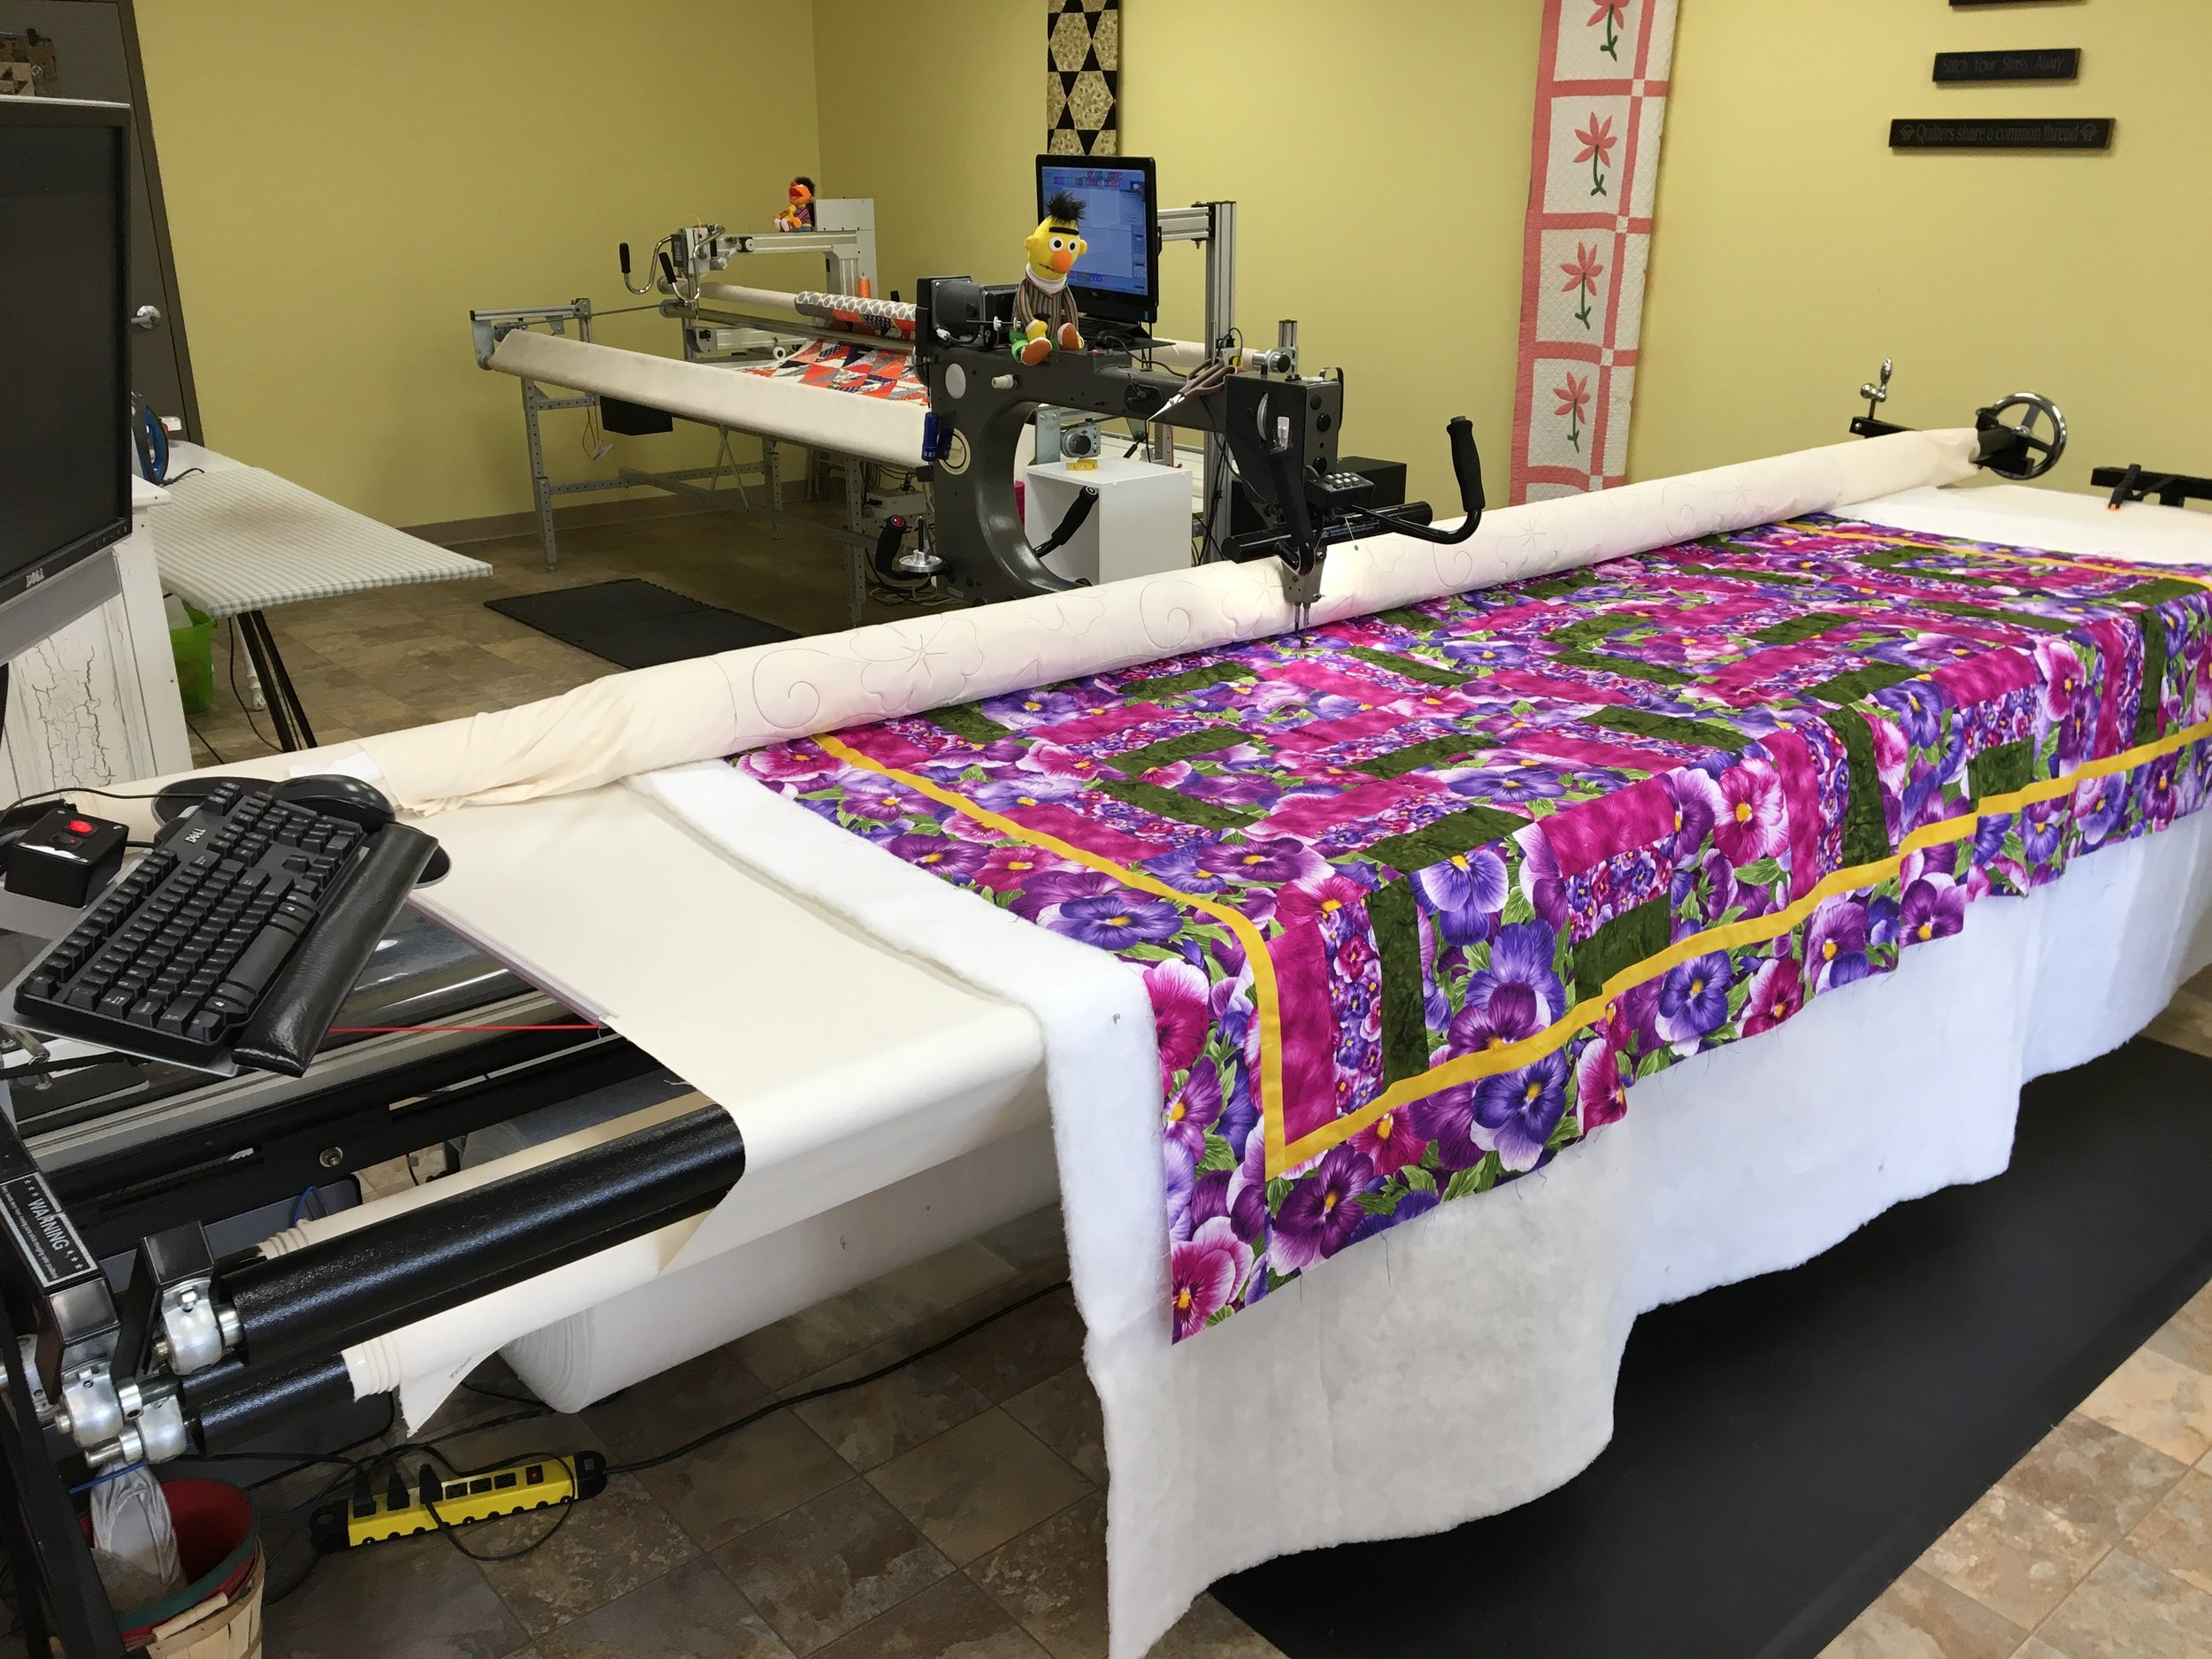 Quilt Services - Your choice of pattern quilted throughout the entire piece (called an edge-2-edge) $0.01/ sq. inEstimated six week turn-aroundCustom Quilting - quoted per projectTiered Custom Quilting: $0.03 - $0.06/ sq. in4 borders, center edge to edge - $0.03/ sq. inQuilt binding -$0.005/ sq. inExpedite Fee - $15.00 (for less than 4 week turn-around limit one per person)Batting offered: 80/20, 100% Polyester and WoolExtra Wide Backing Also AvailableFrequent Quilter Reward Card - $30 offafter 10th visit